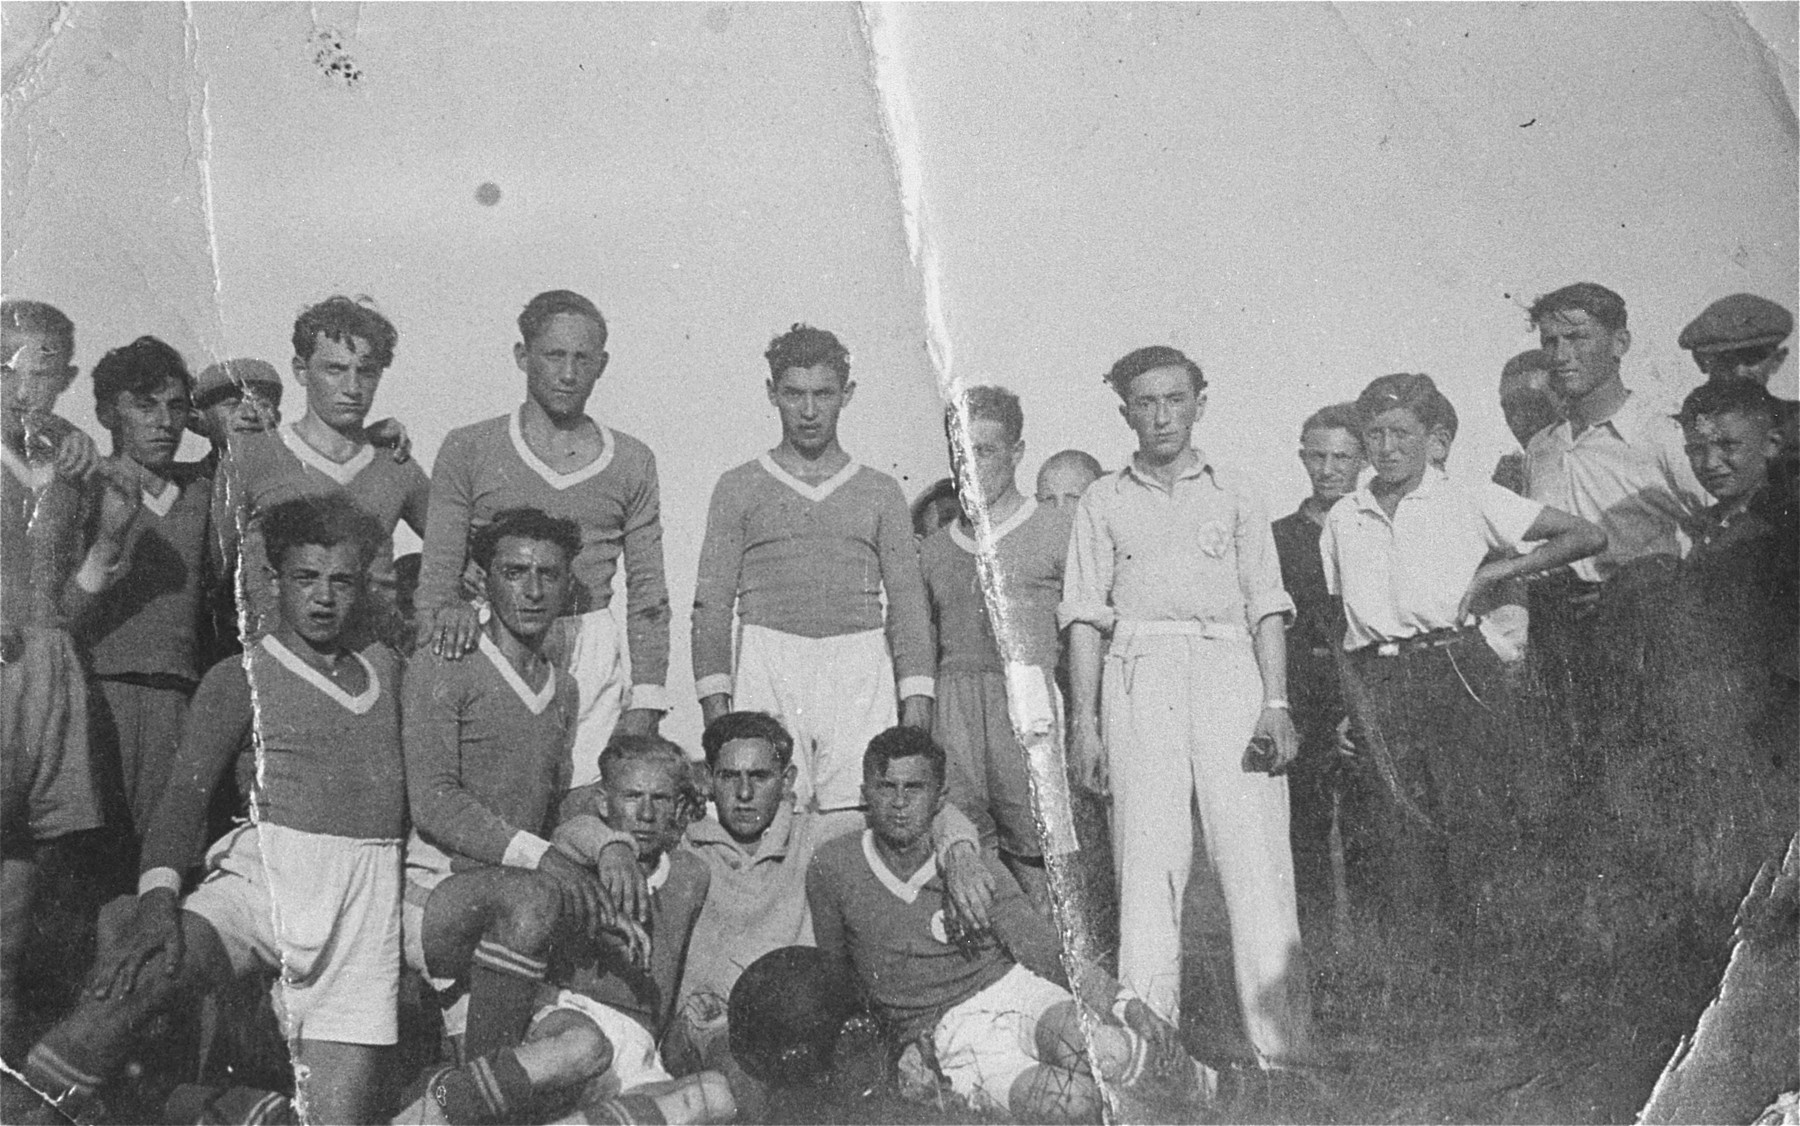 Members of a Jewish soccer team in Gargzdai, Lithuania.